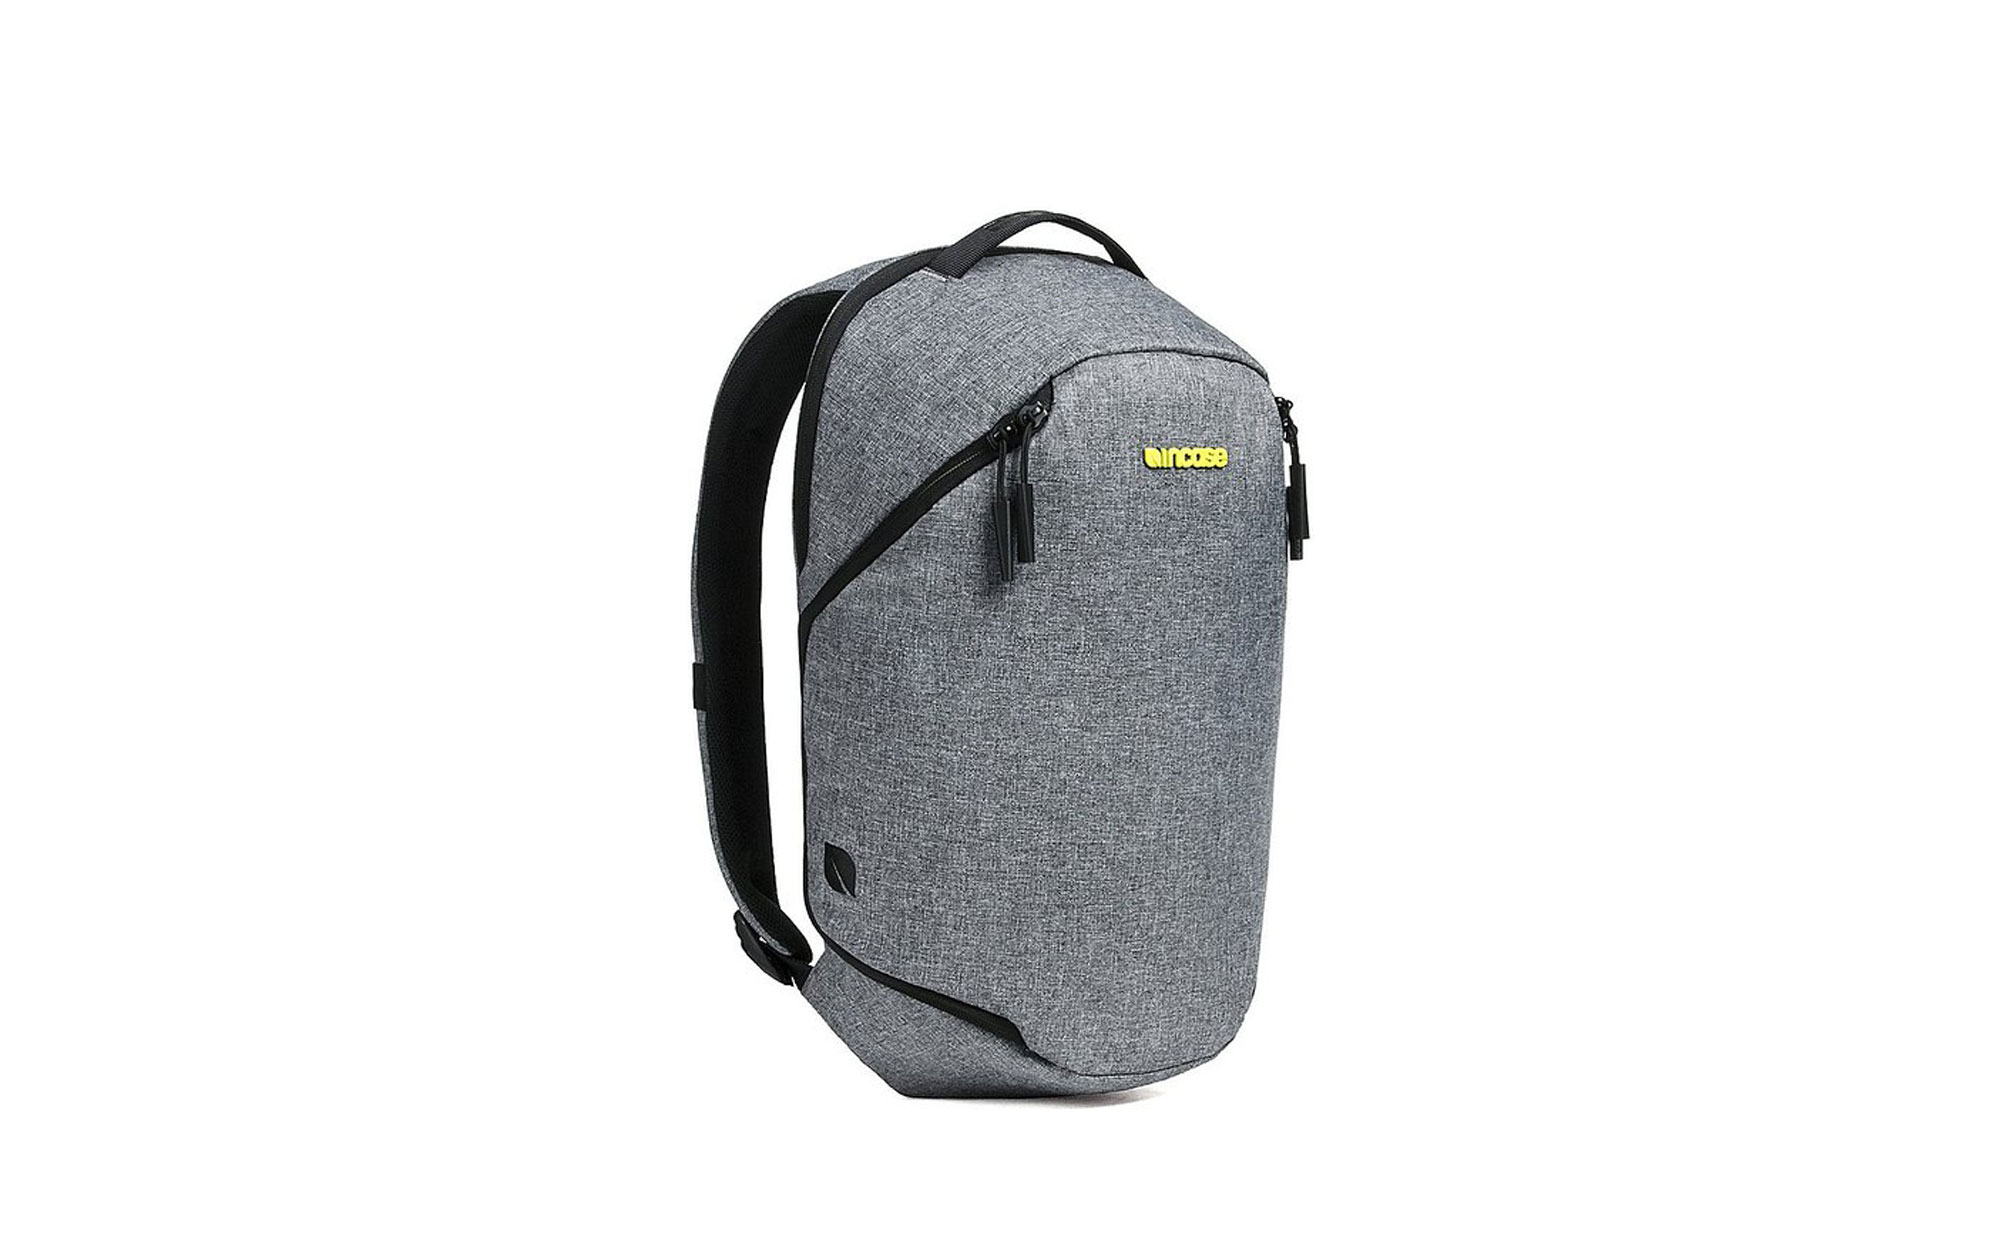 Camera Bags - Incase Reform Action Camera Pack